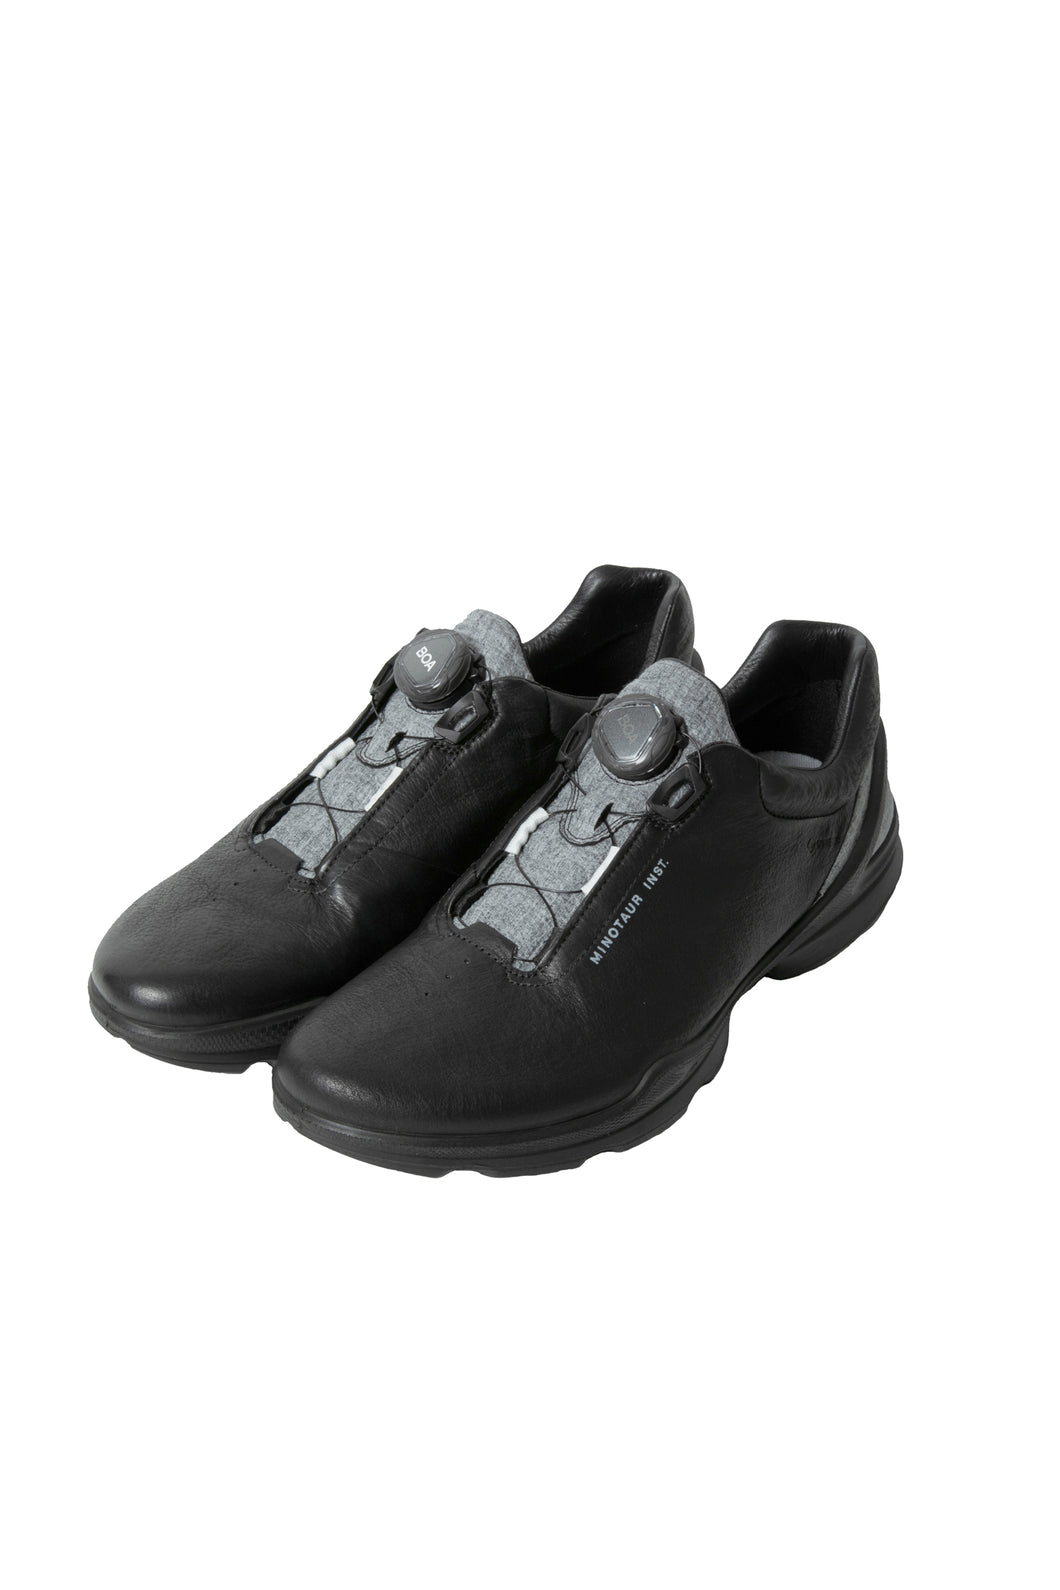 ECCO Dyneema Leather Running Shoes